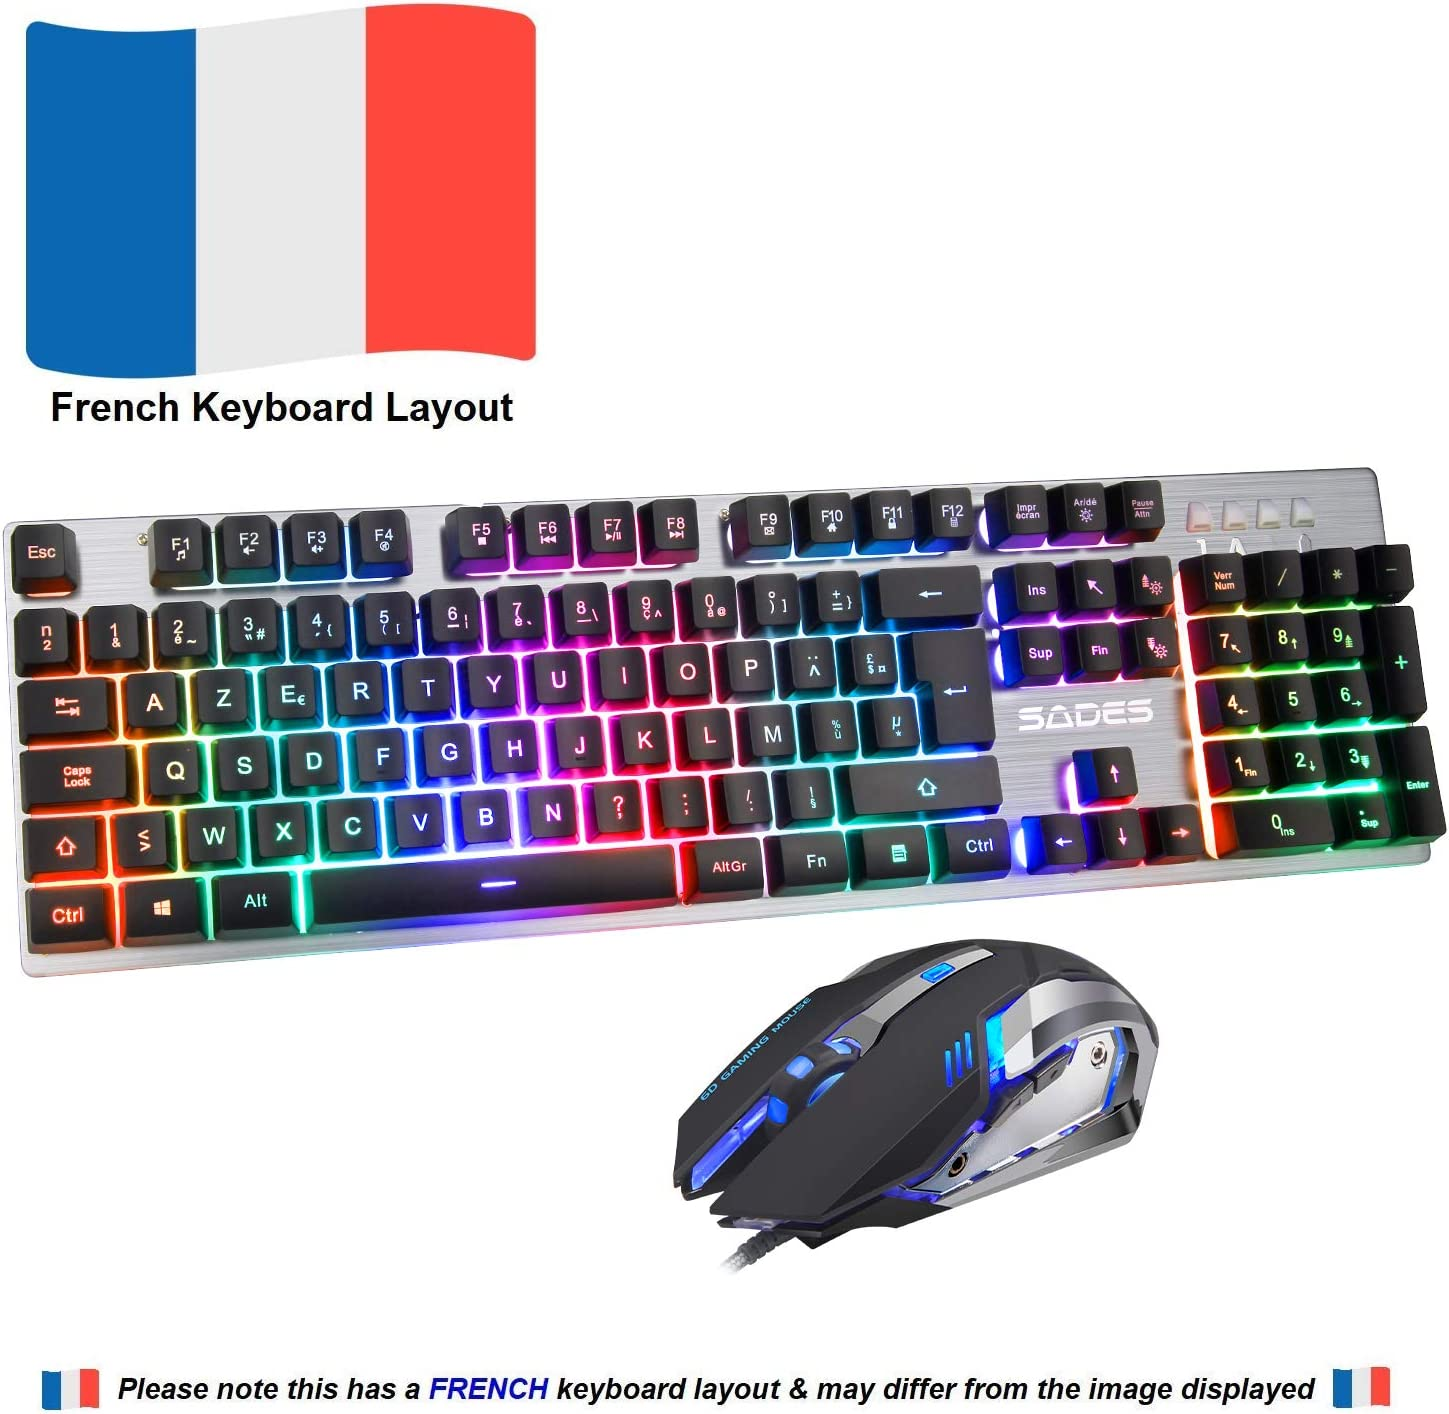 Keyboard Mouse Sades Ek 1 Keyboard Mouse French Computers Accessories